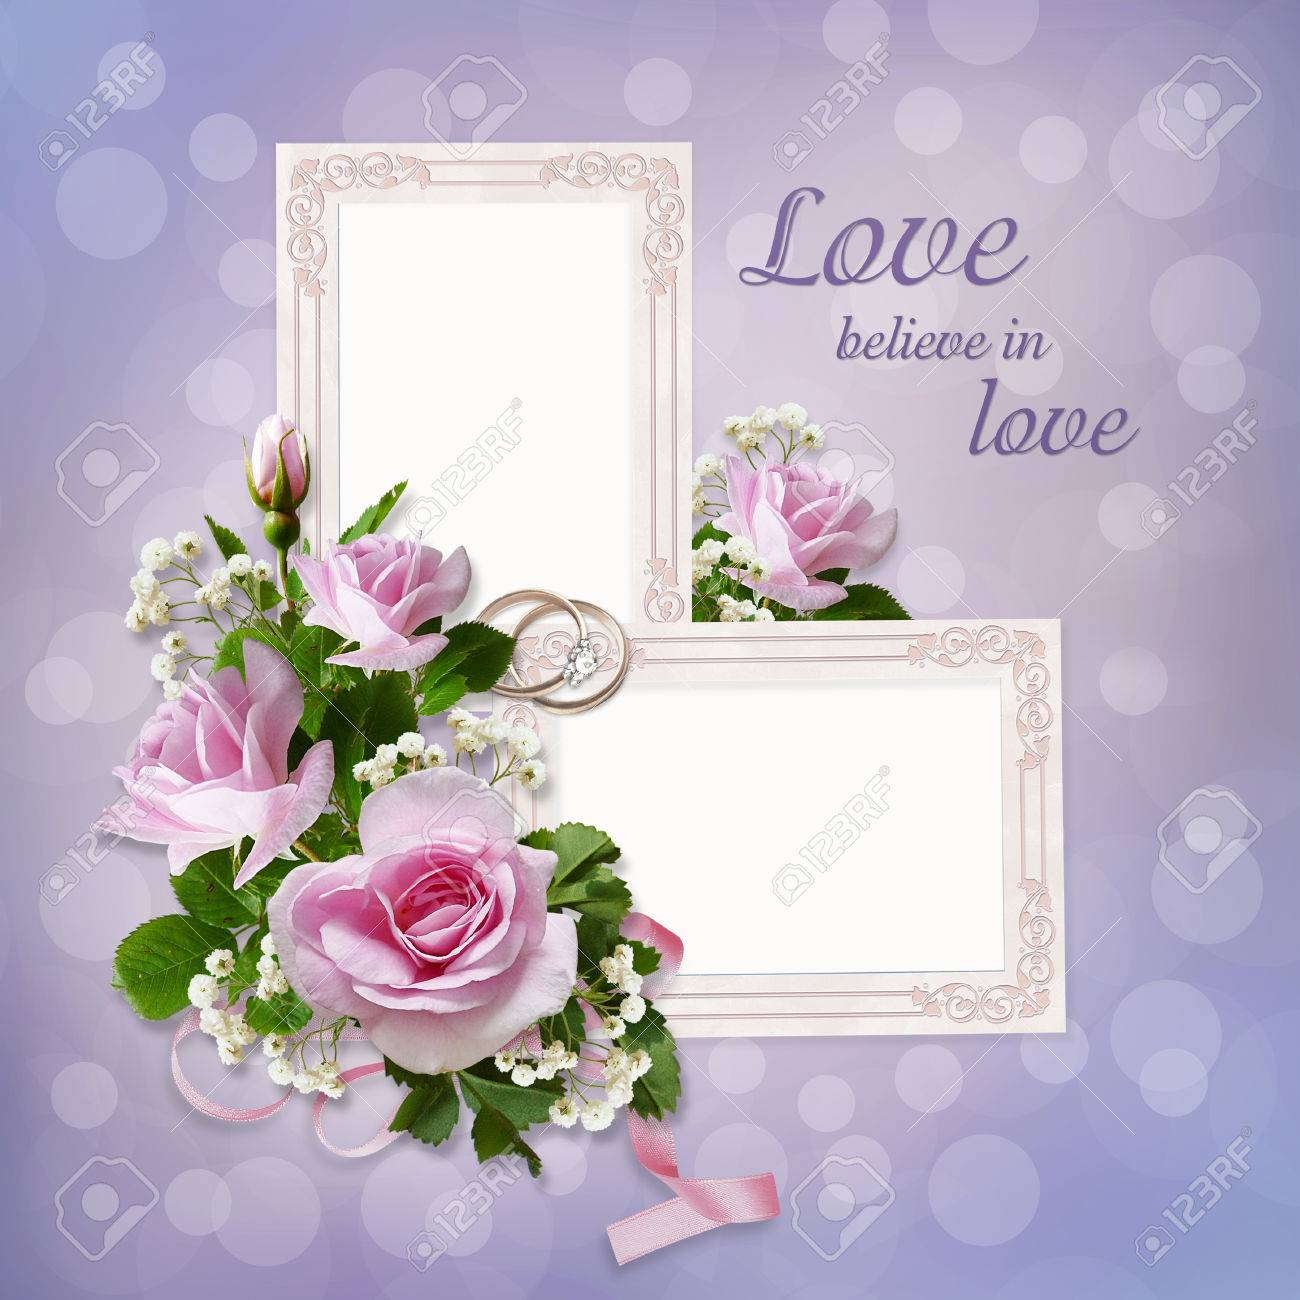 Roses Frames Wedding Rings On A Gentle Beautiful Background Stock Photo Picture And Royalty Free Image Image 54869600